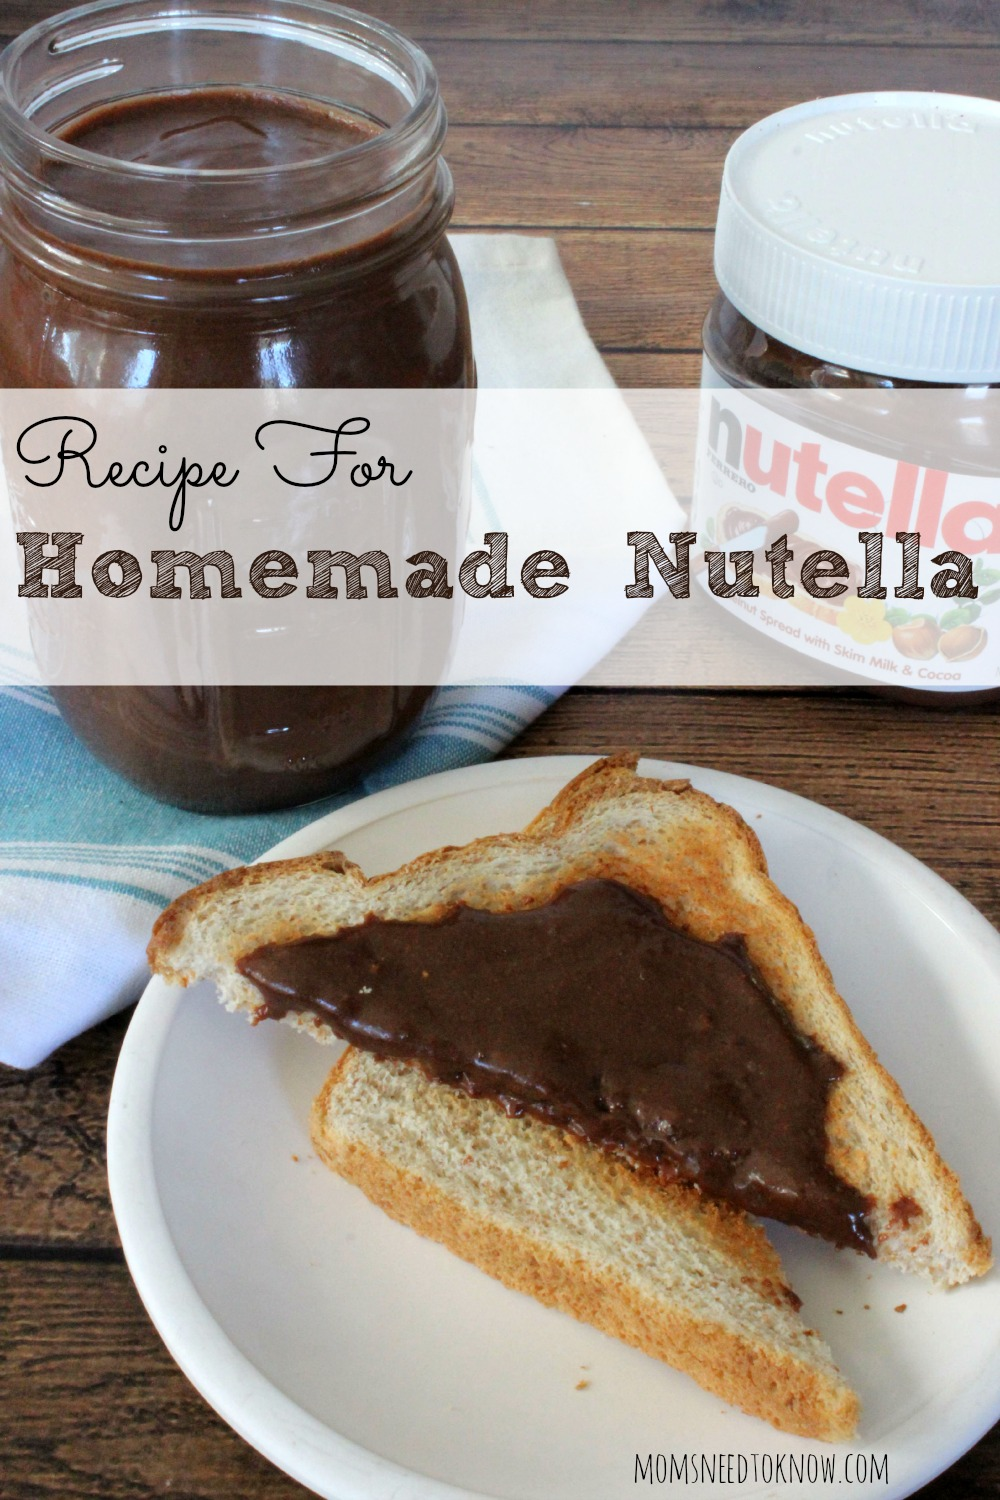 Recipe for Homemade Nutella